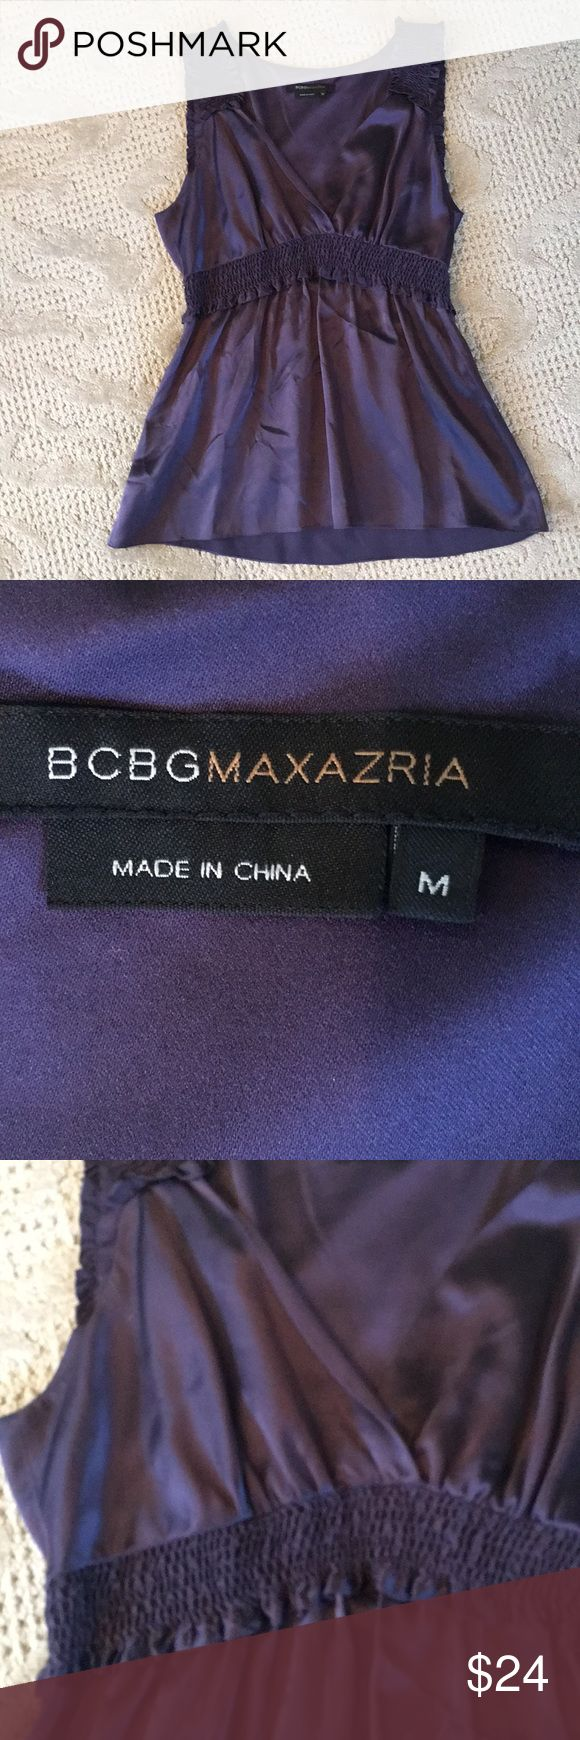 BCBGMaxazria silk top VGUC. No defects noted. Amethyst color. Stretchy smocking at waist.  V neck. Pullover style BCBGMaxAzria Tops